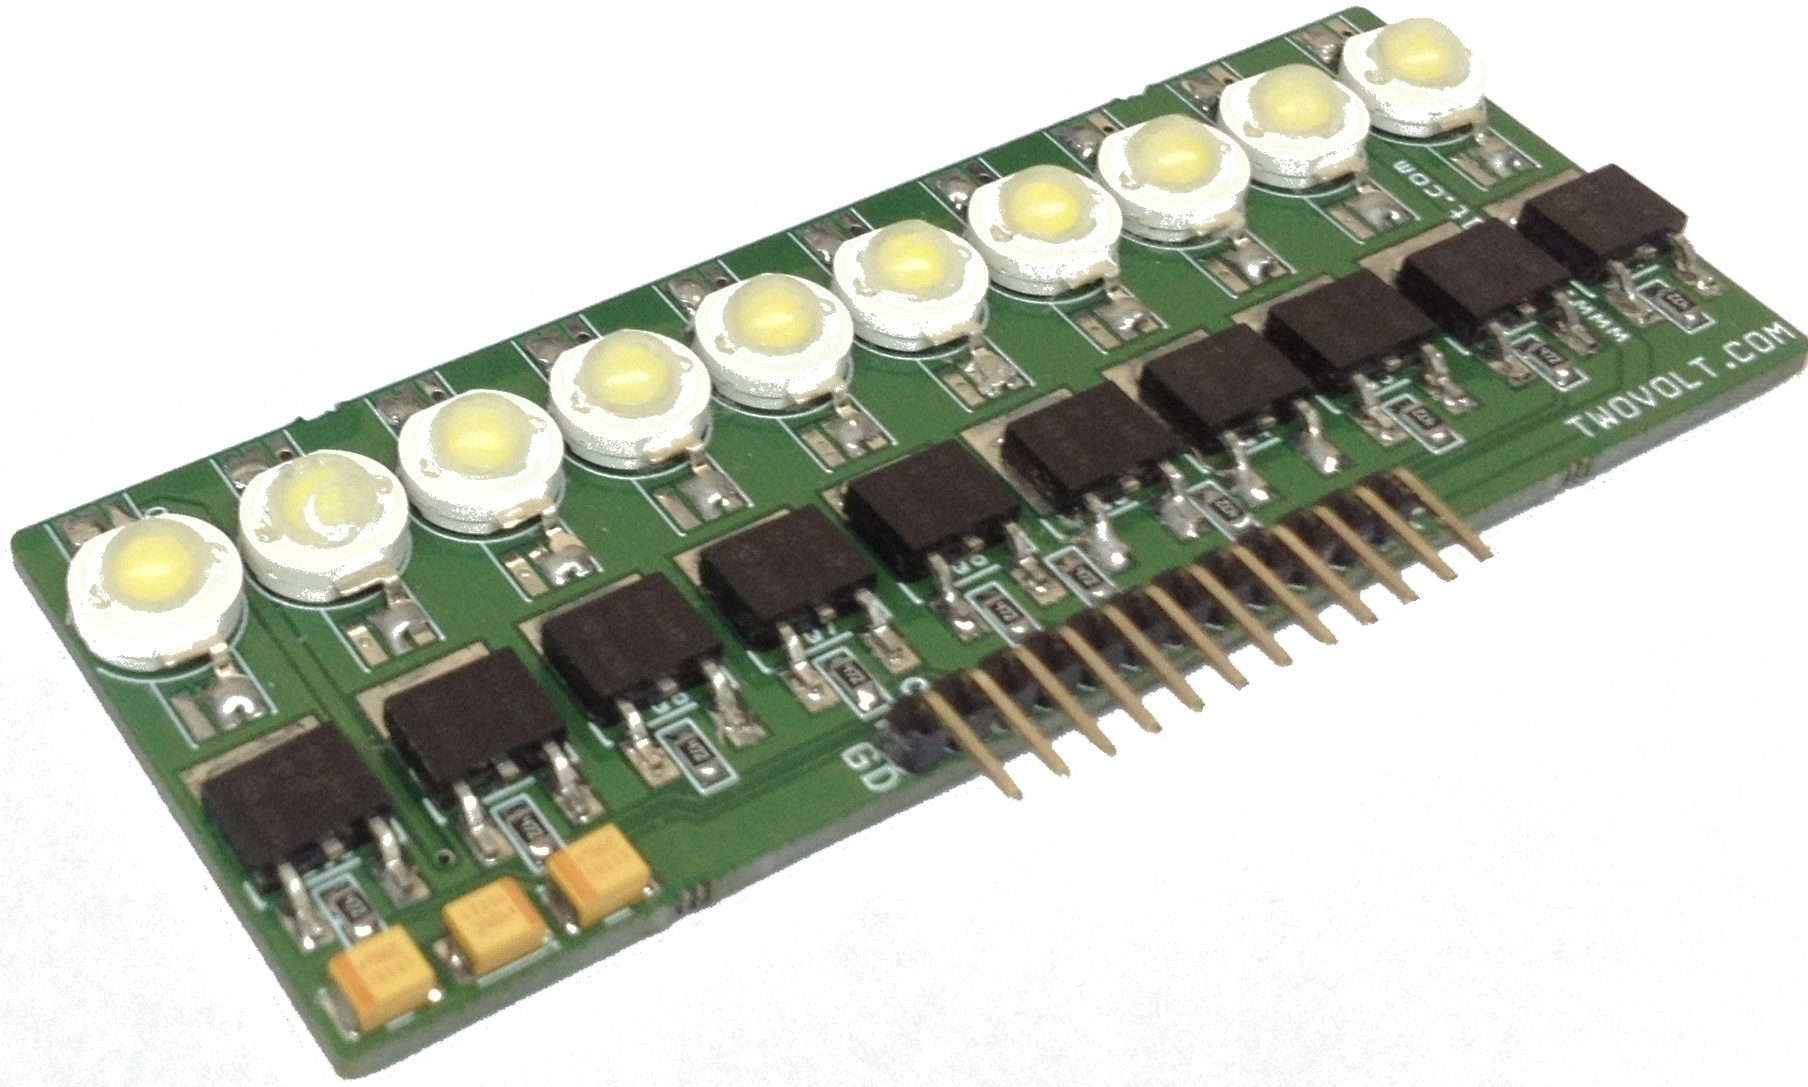 Sequential Timer Circuit Using Ic 555 To Switch Relays Gadgetronicx